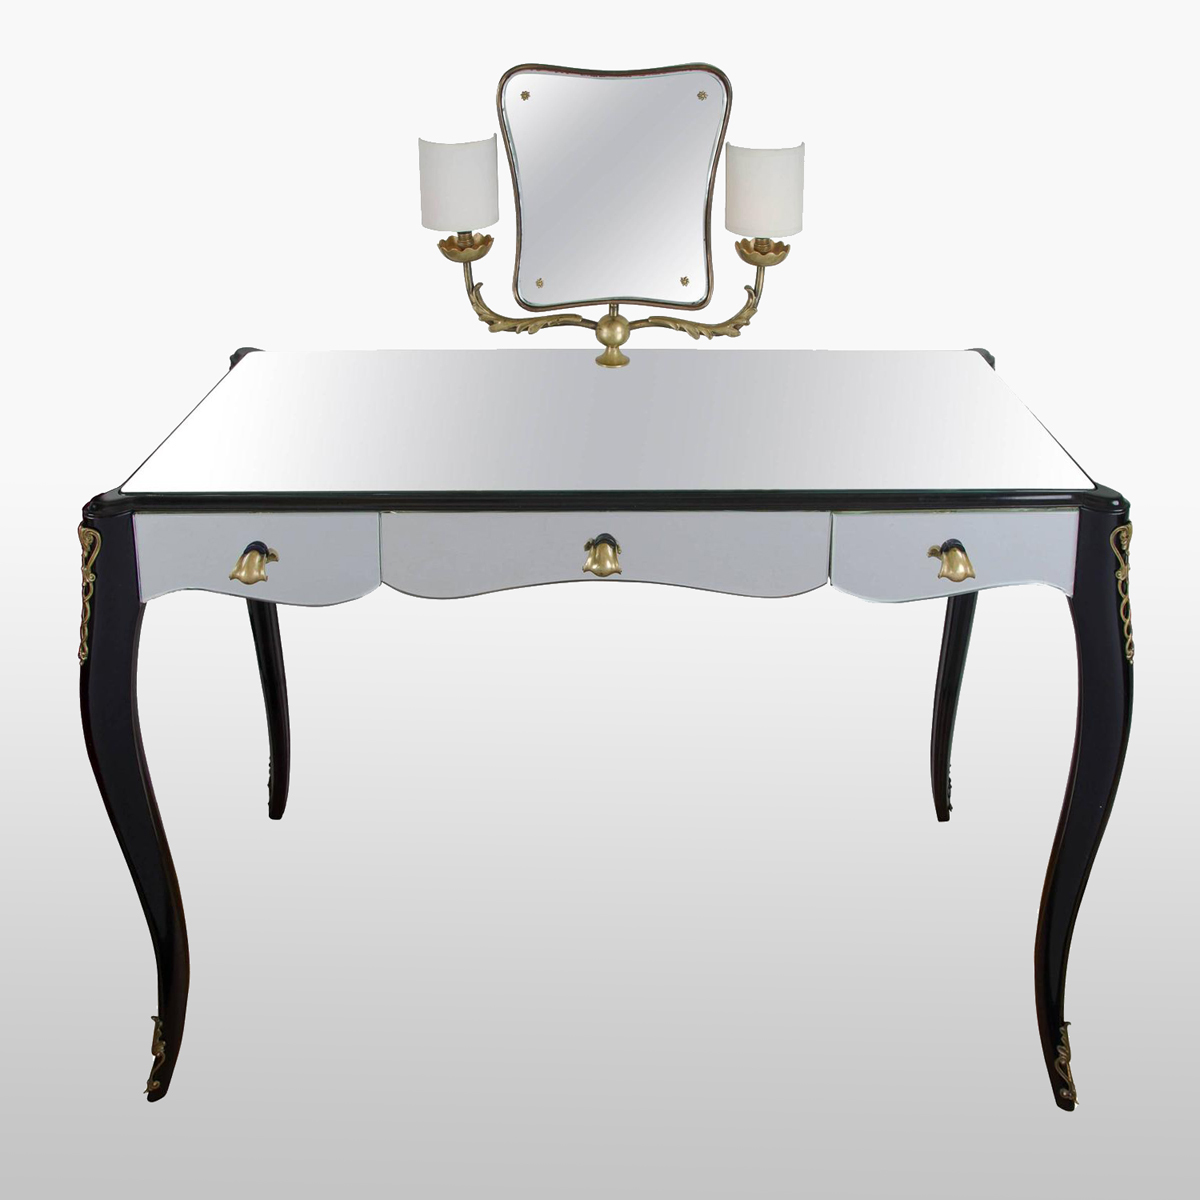 Valerie Wade Fd0524 1950S Italian Dressing Table Fratelli De Capitani 01